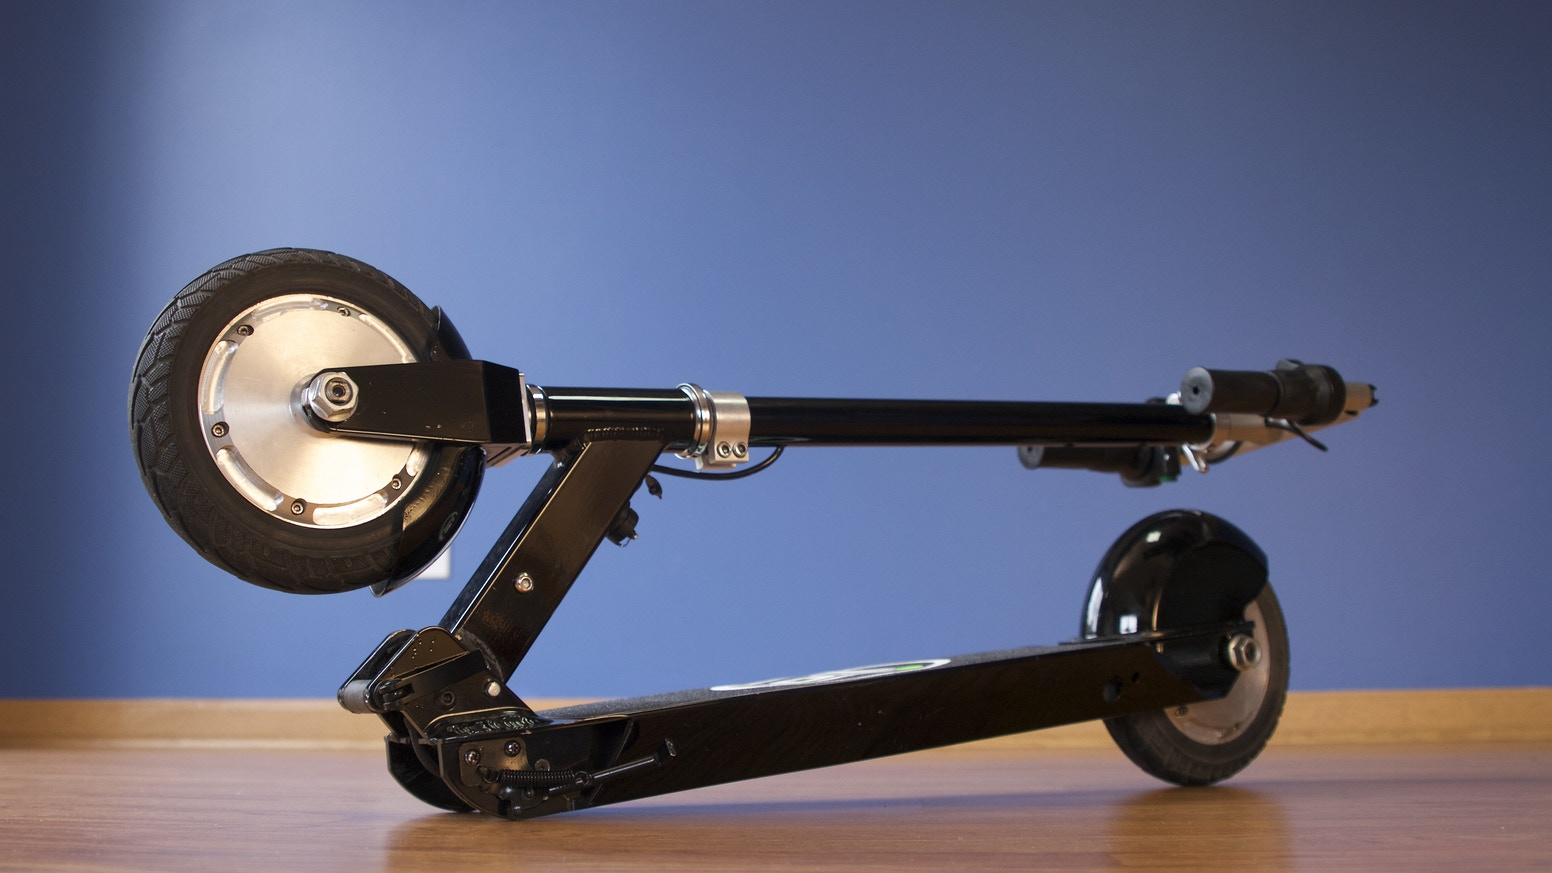 A Lightweight Practical And Affordable Lithium Ion Battery Ed Electric Scooter For